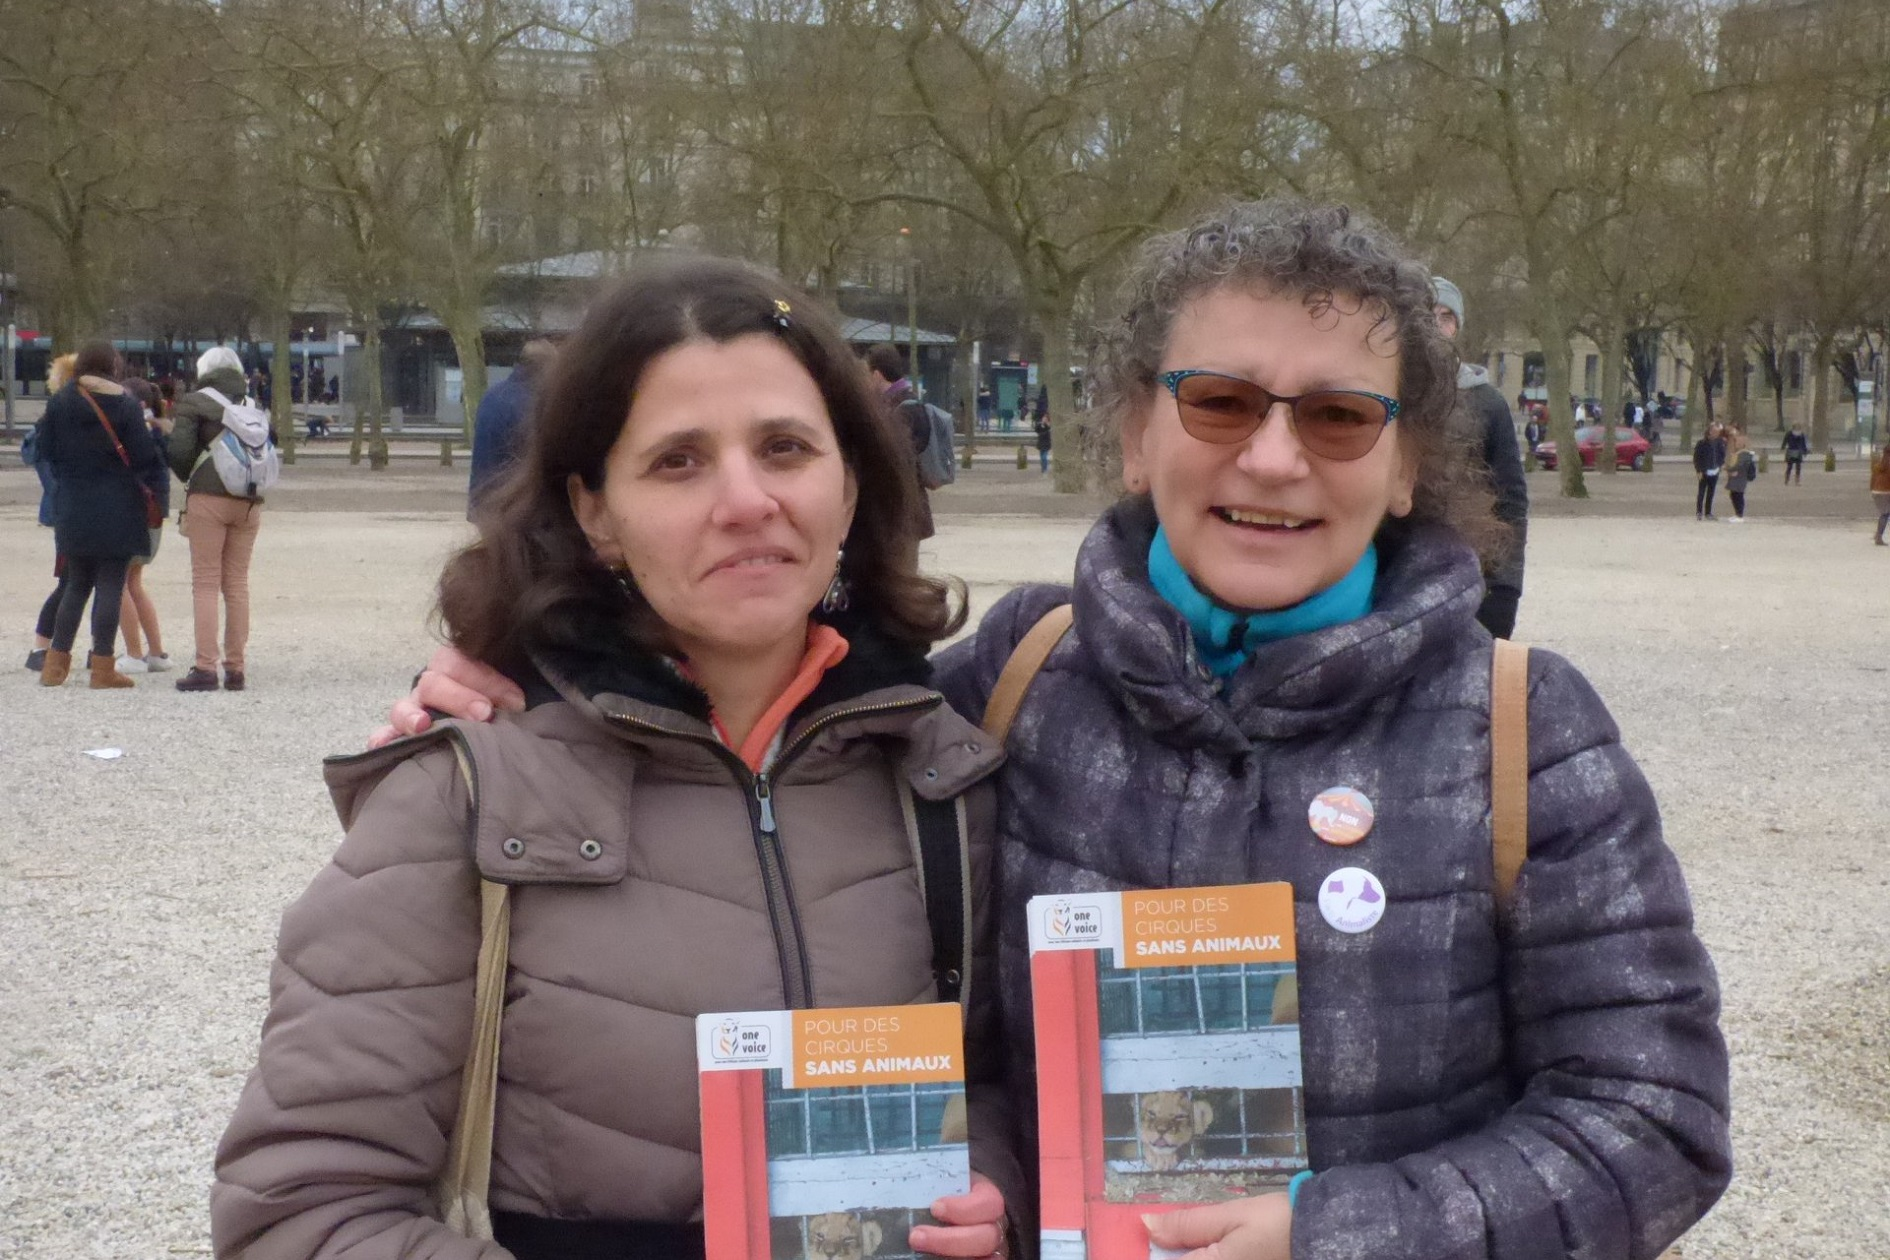 acta_gruss_bordeaux_2020_tracts_1